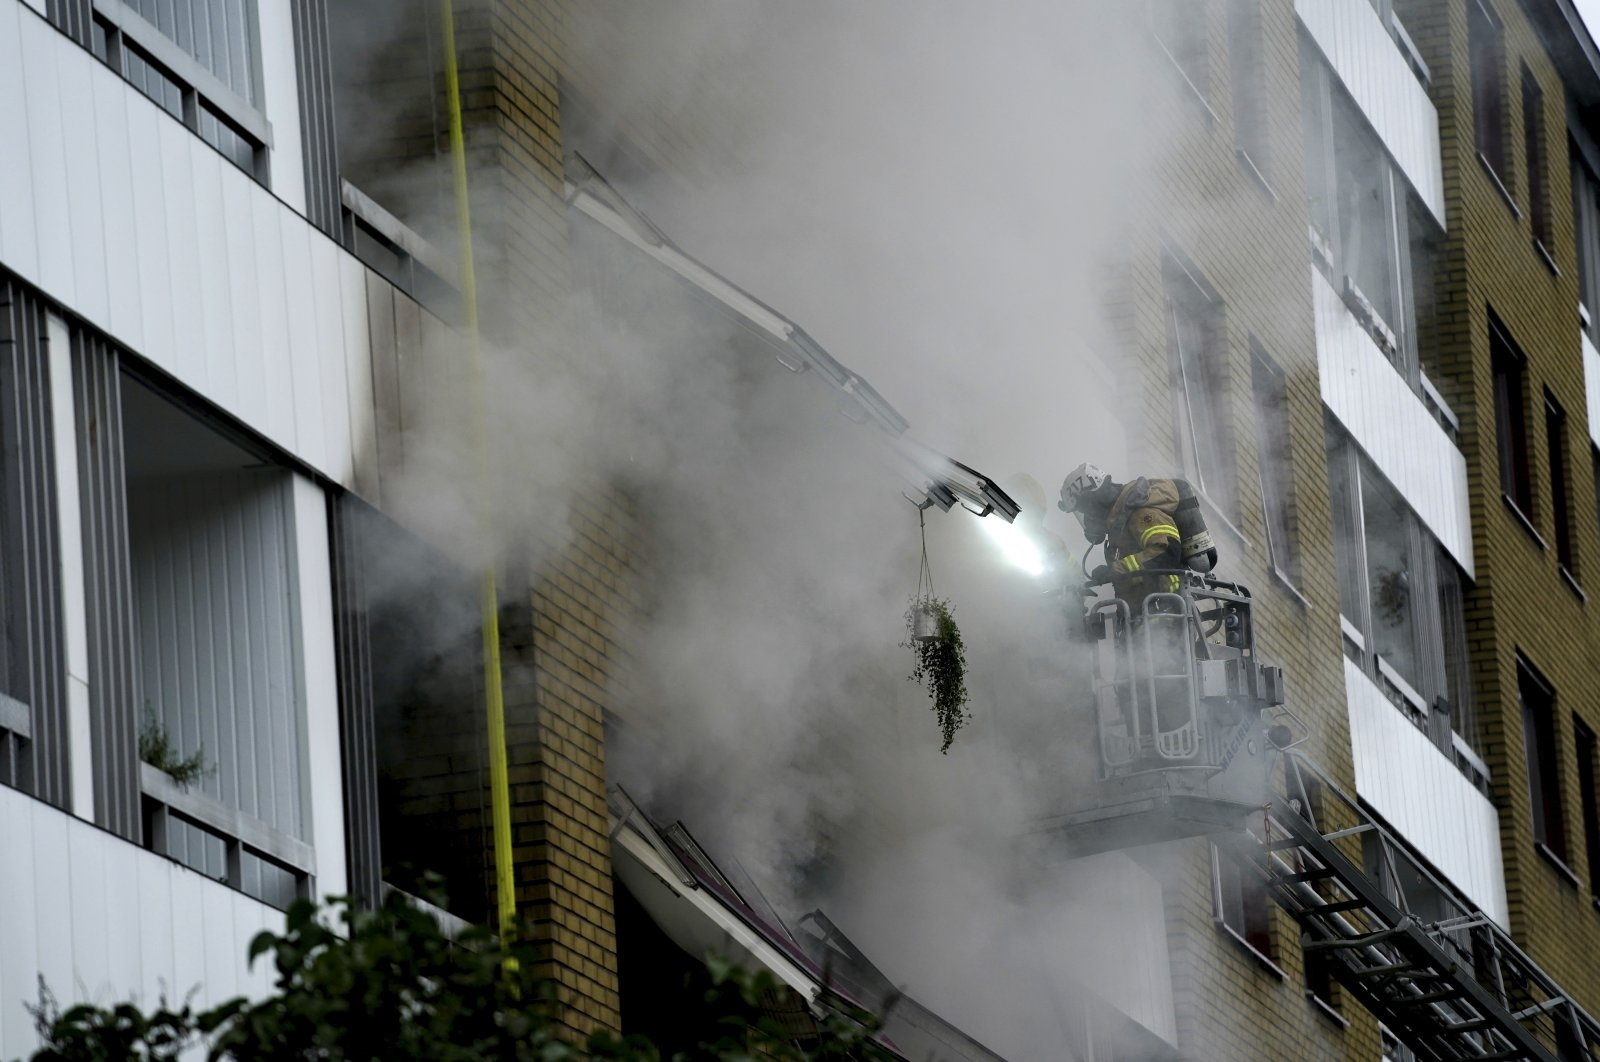 The aftermath of an explosion at an apartment building in the Annedal district of Gothenburg, Sweden, Sept. 28, 2021. (EPA-EFE Photo)